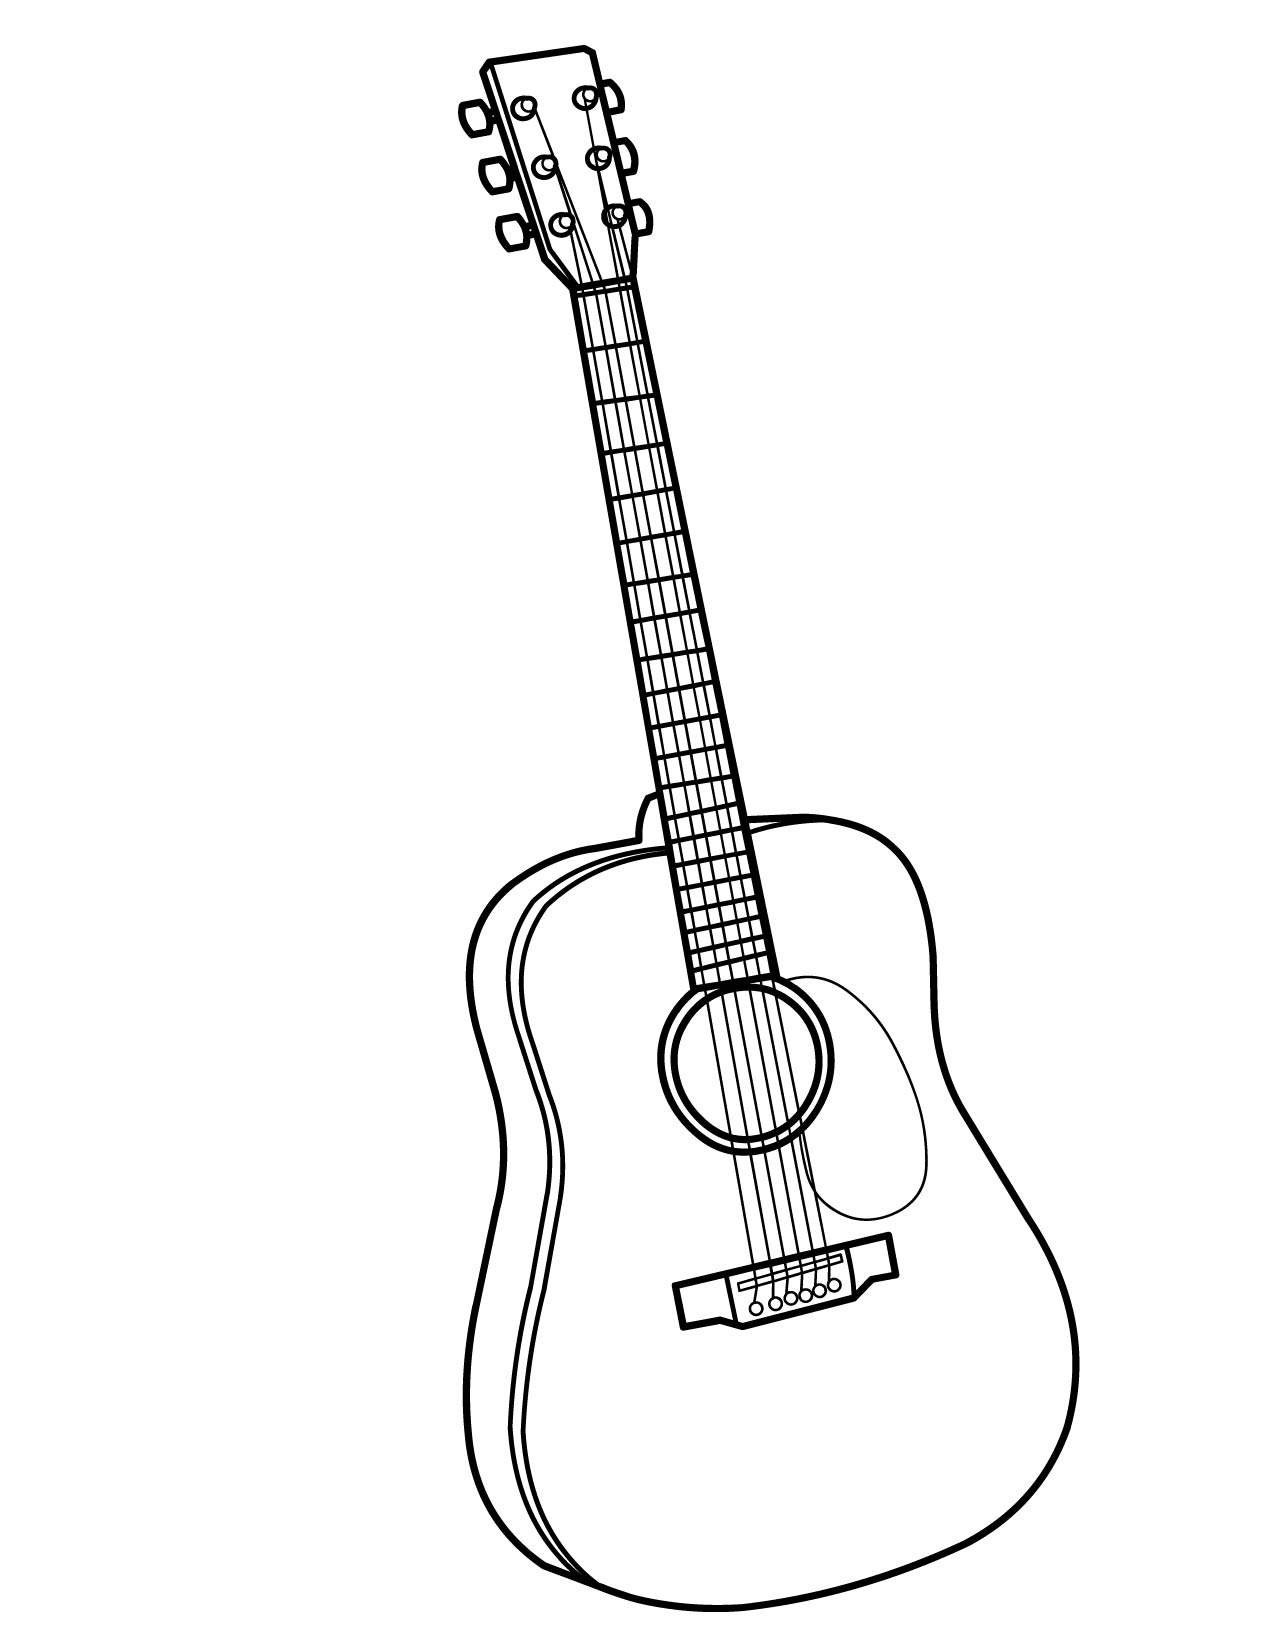 printable coloring pages guitar - photo#2